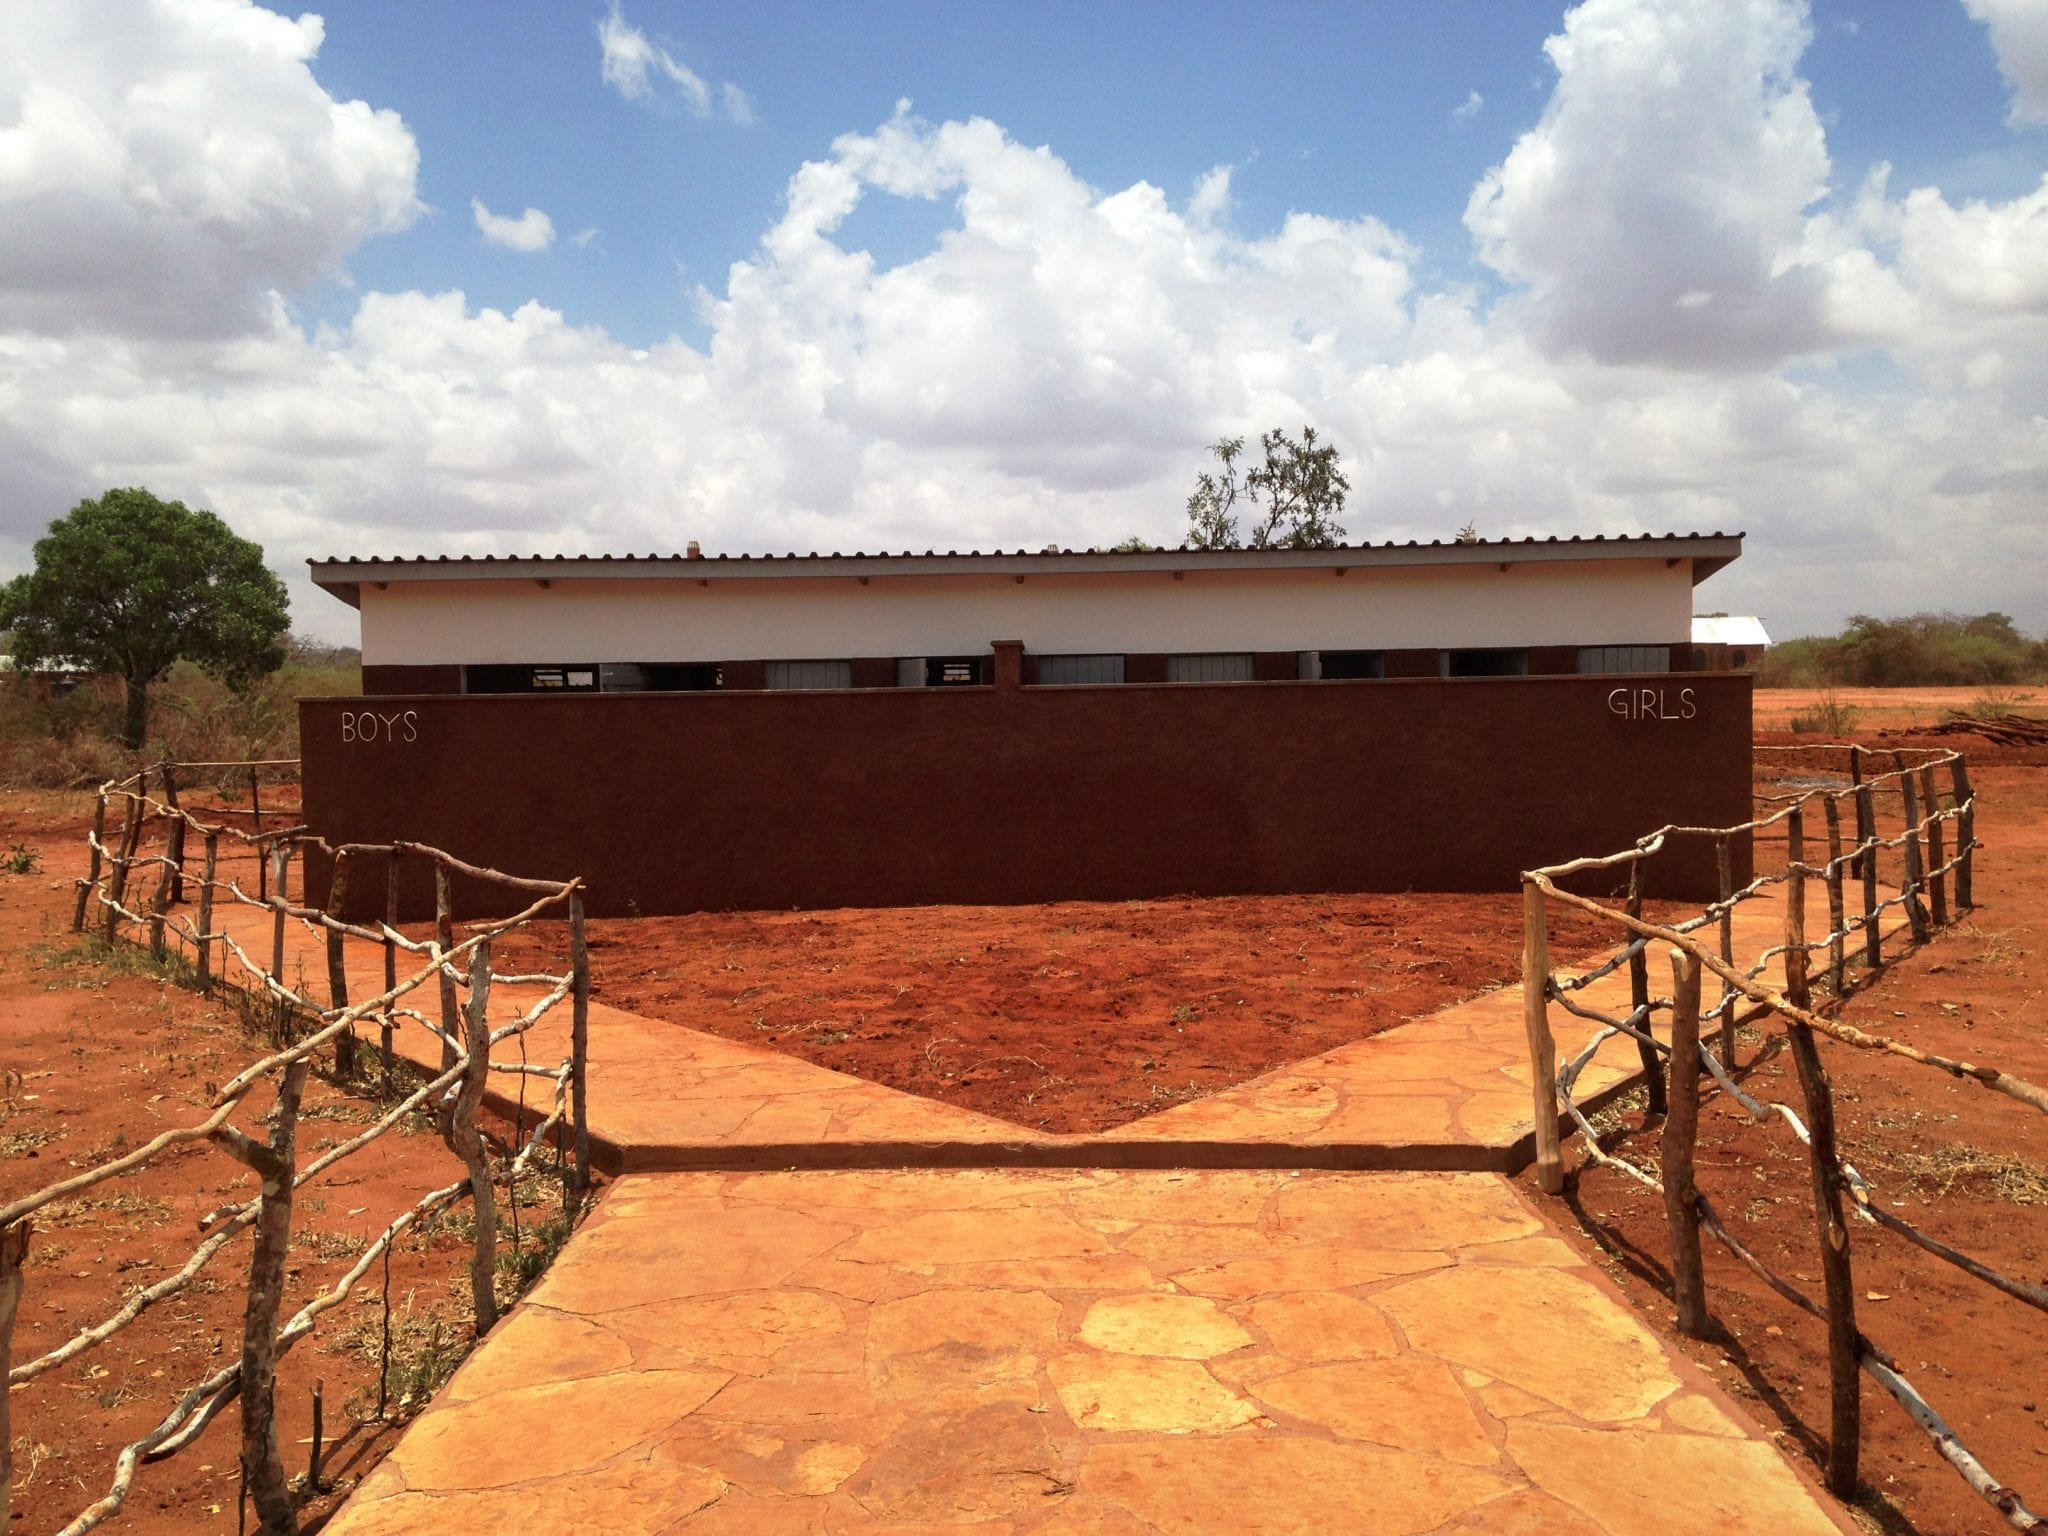 Primary pupil toilets (13.03.2017)